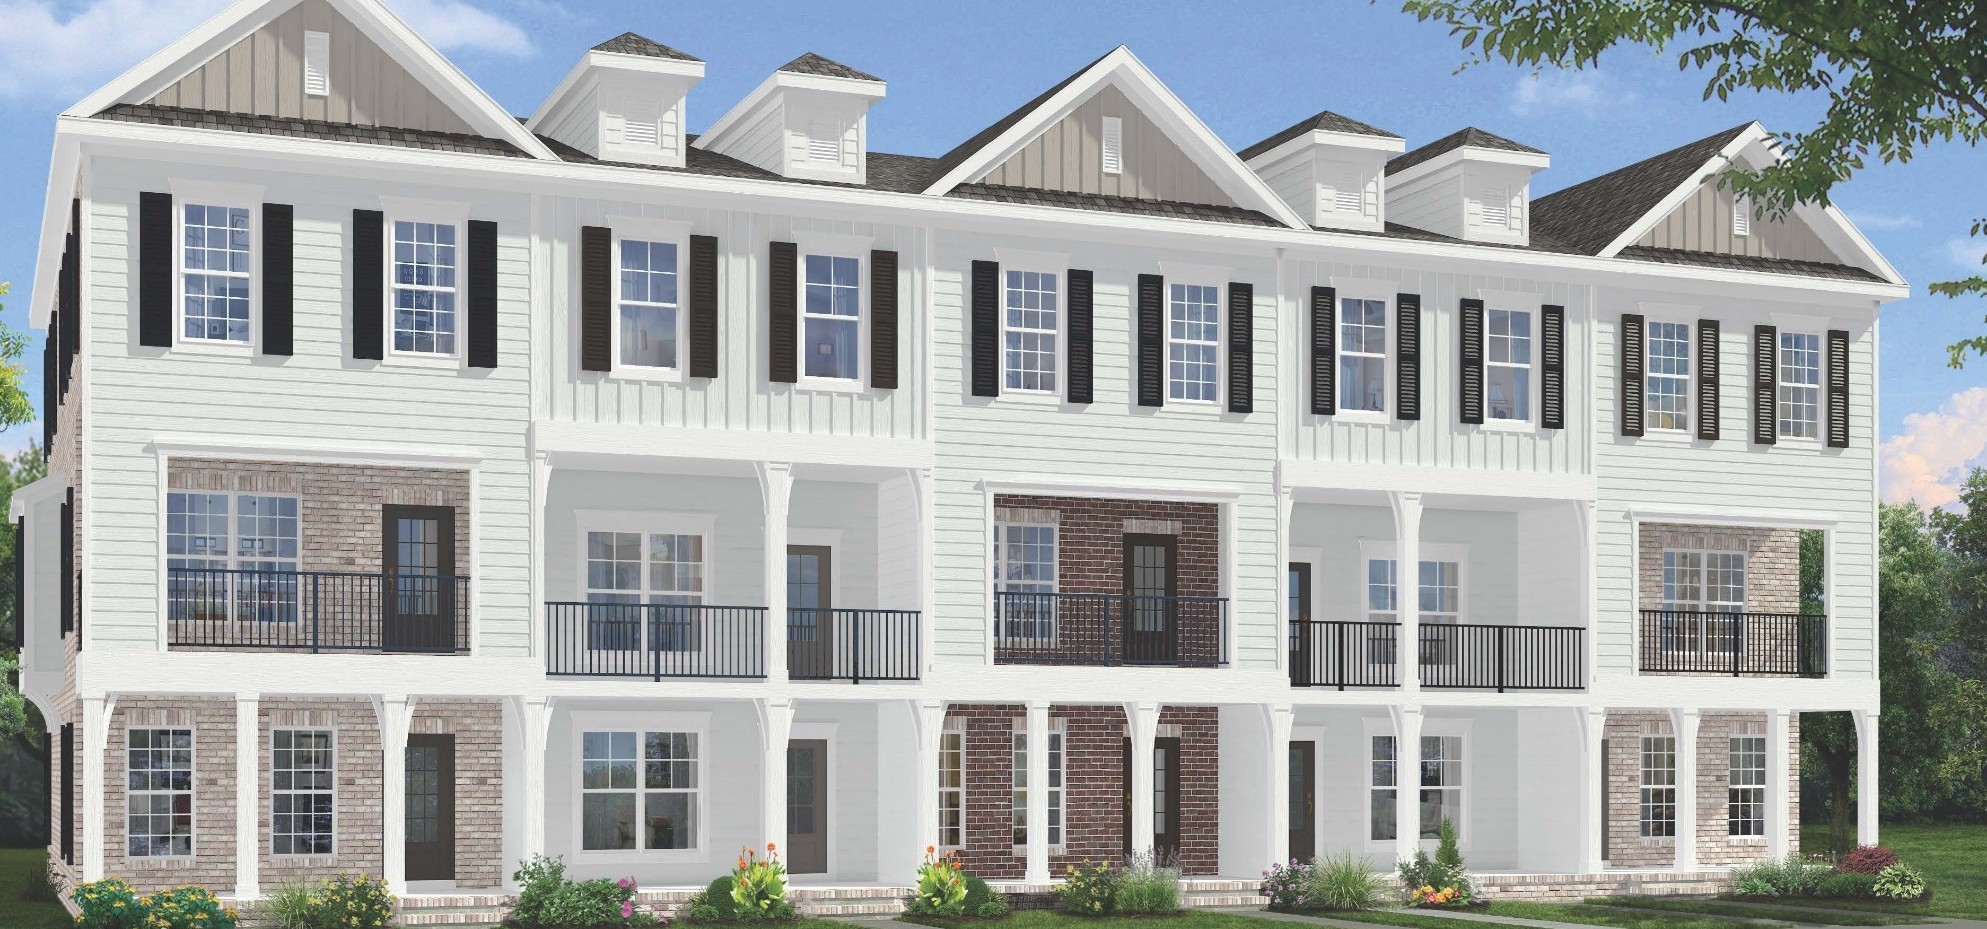 Southpoint Townhomes for Sale Brentwood TN